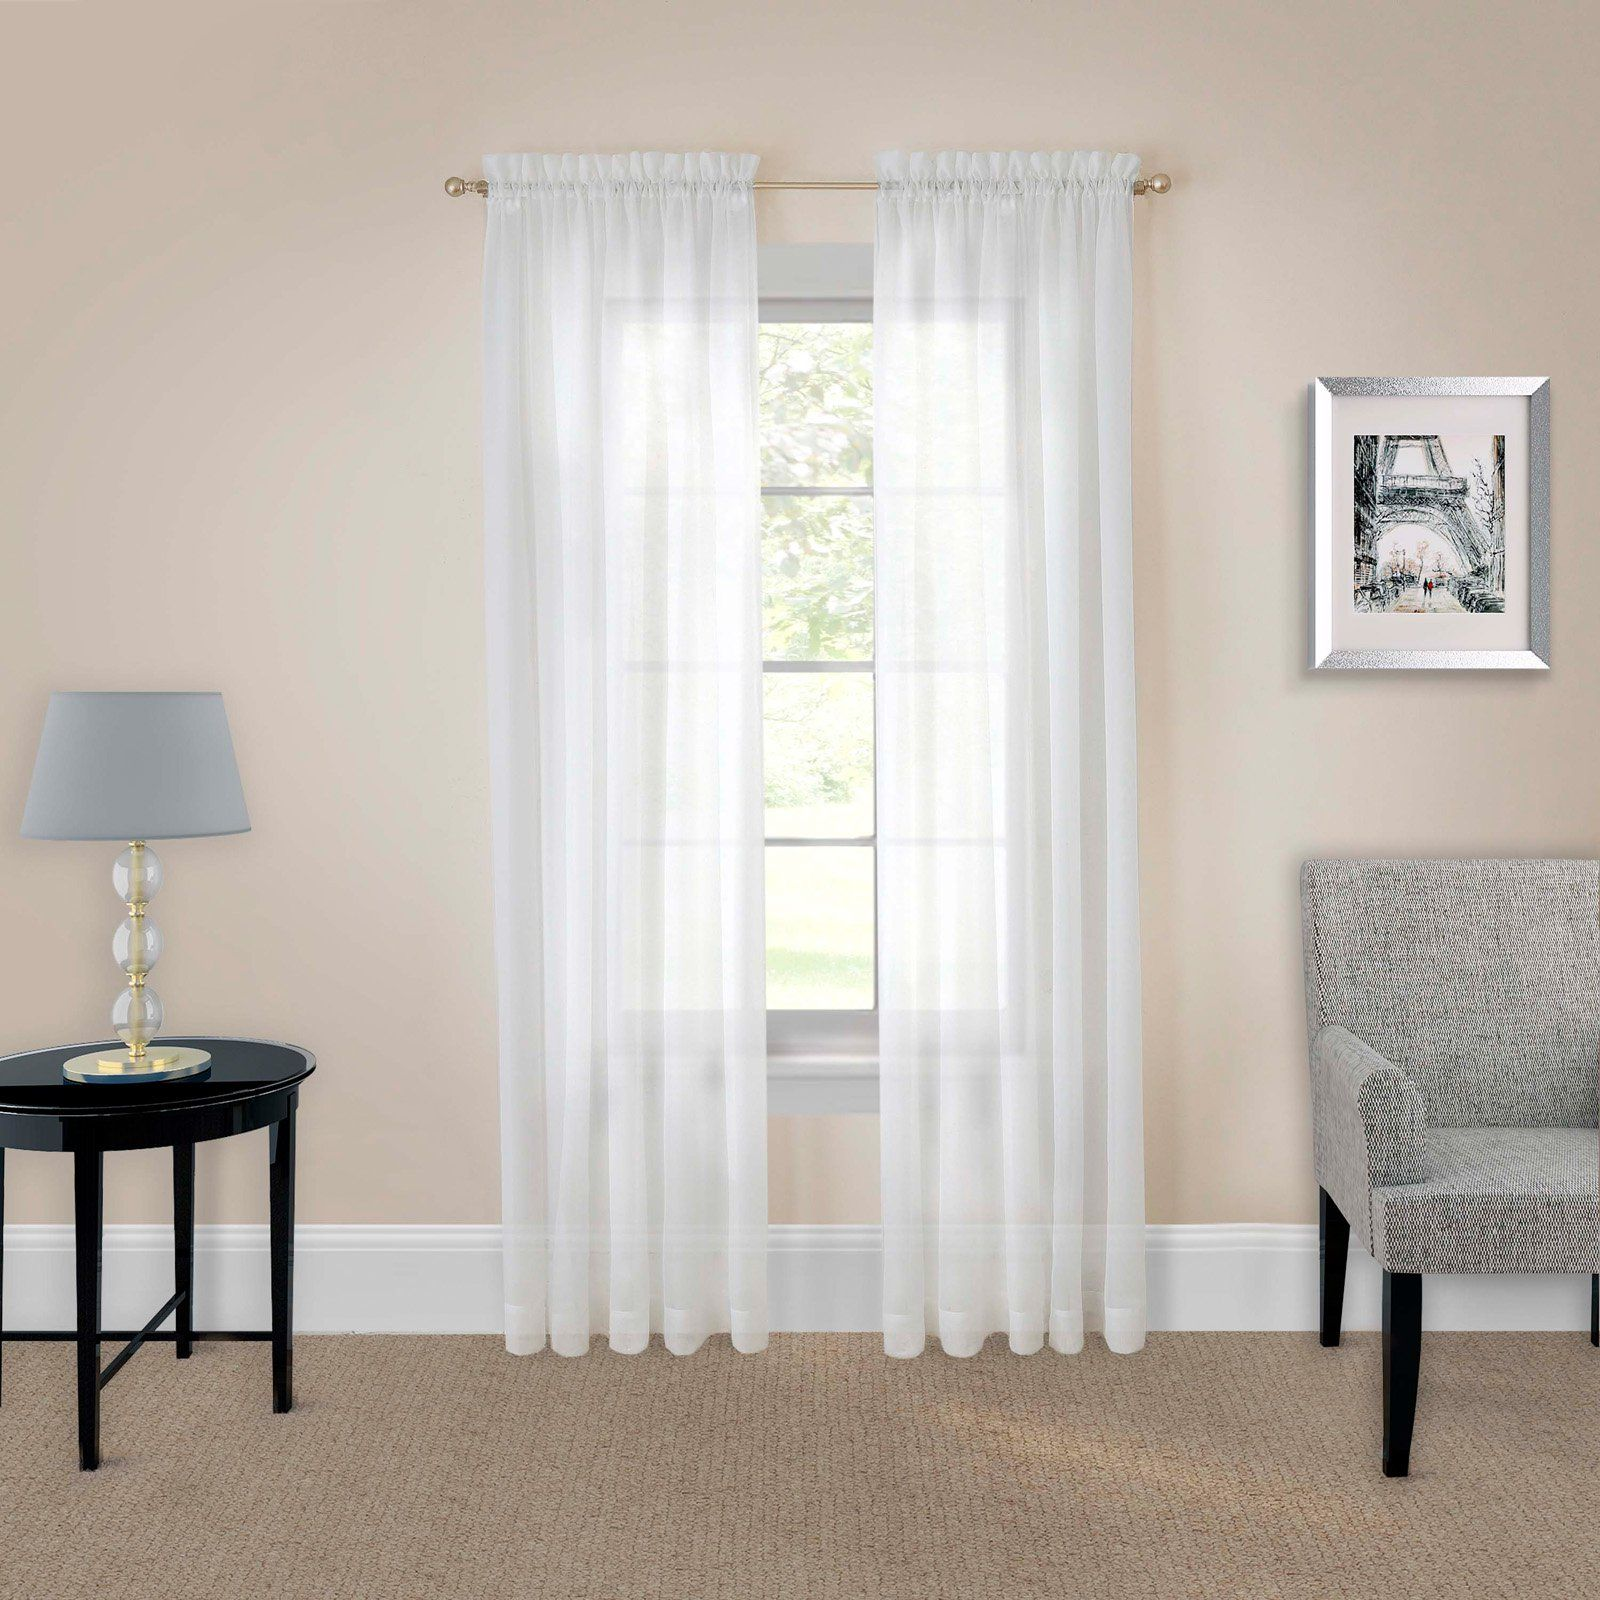 Pairs To Go Victoria Voile Curtain Panel Pair White Curtains